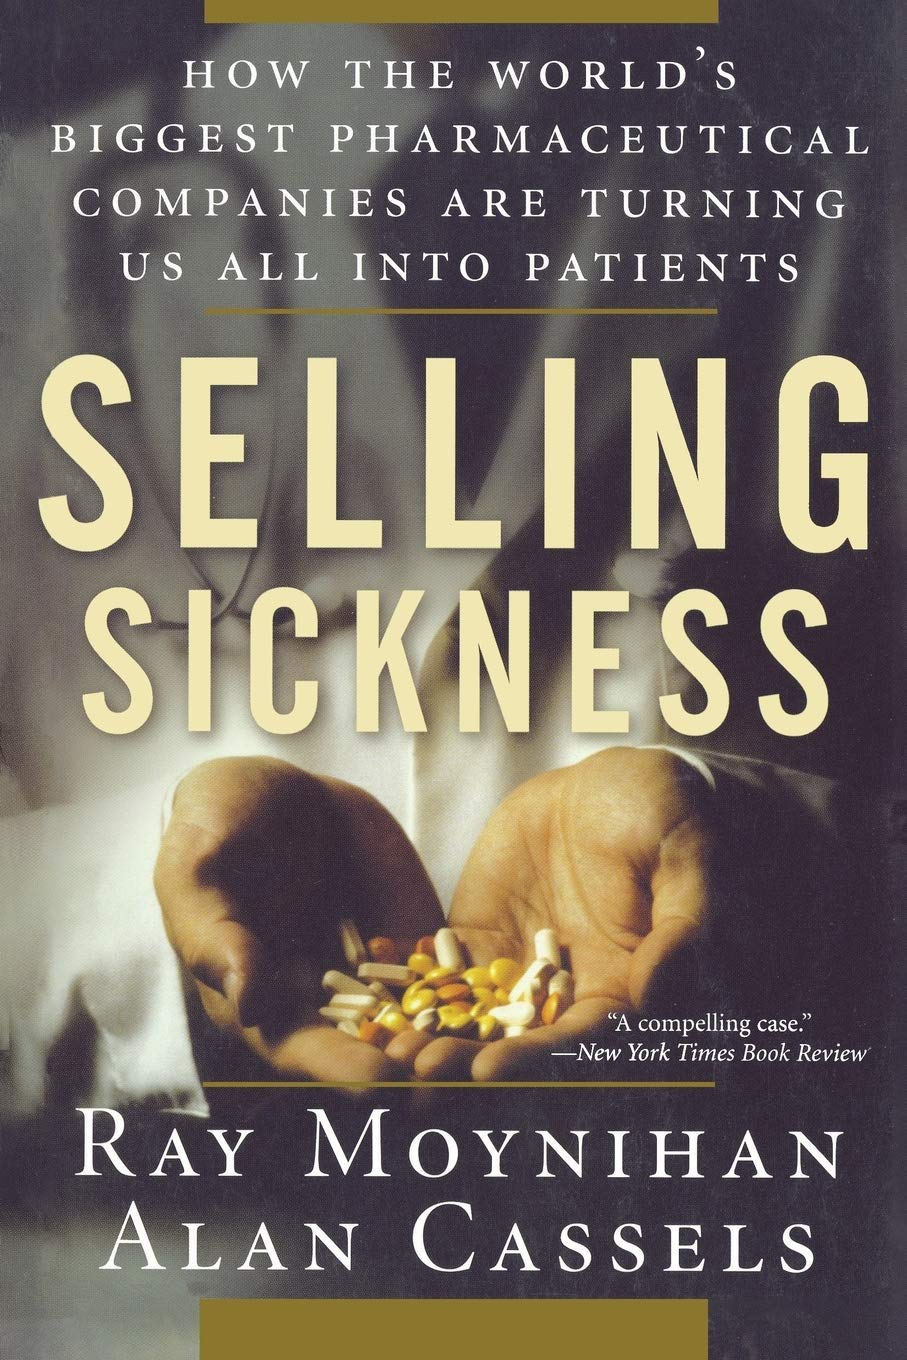 Image OfSelling Sickness: How The World's Biggest Pharmaceutical Companies Are Turning Us All Into Patients